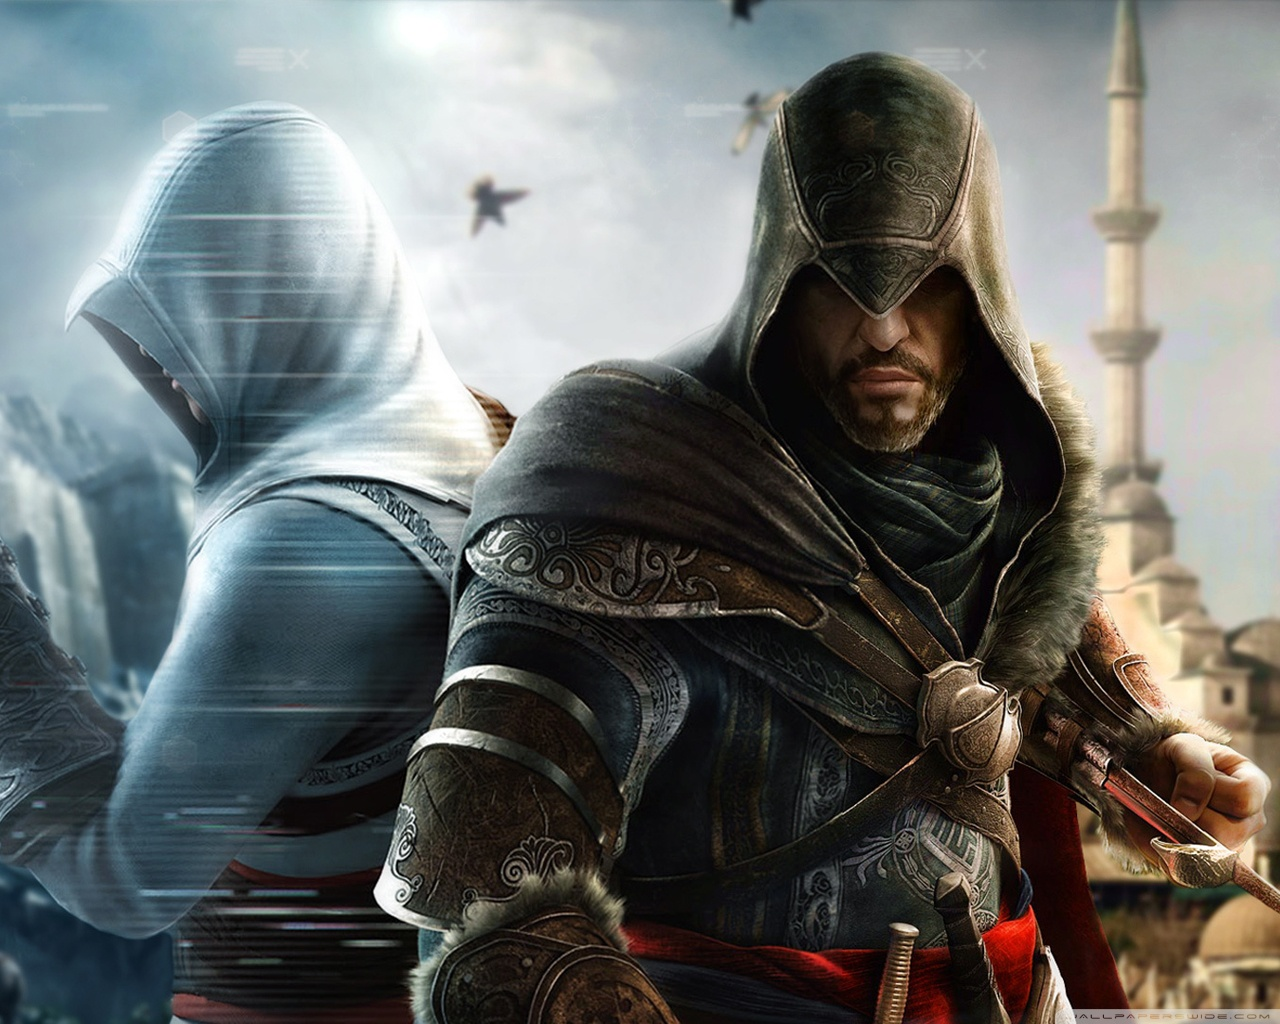 http://4.bp.blogspot.com/-wku_EfJpcWM/TryJmB5Q4aI/AAAAAAAAA_E/WNBSfXm6xSc/s1600/assassins_creed___revelations-wallpaper-1280x1024.jpg